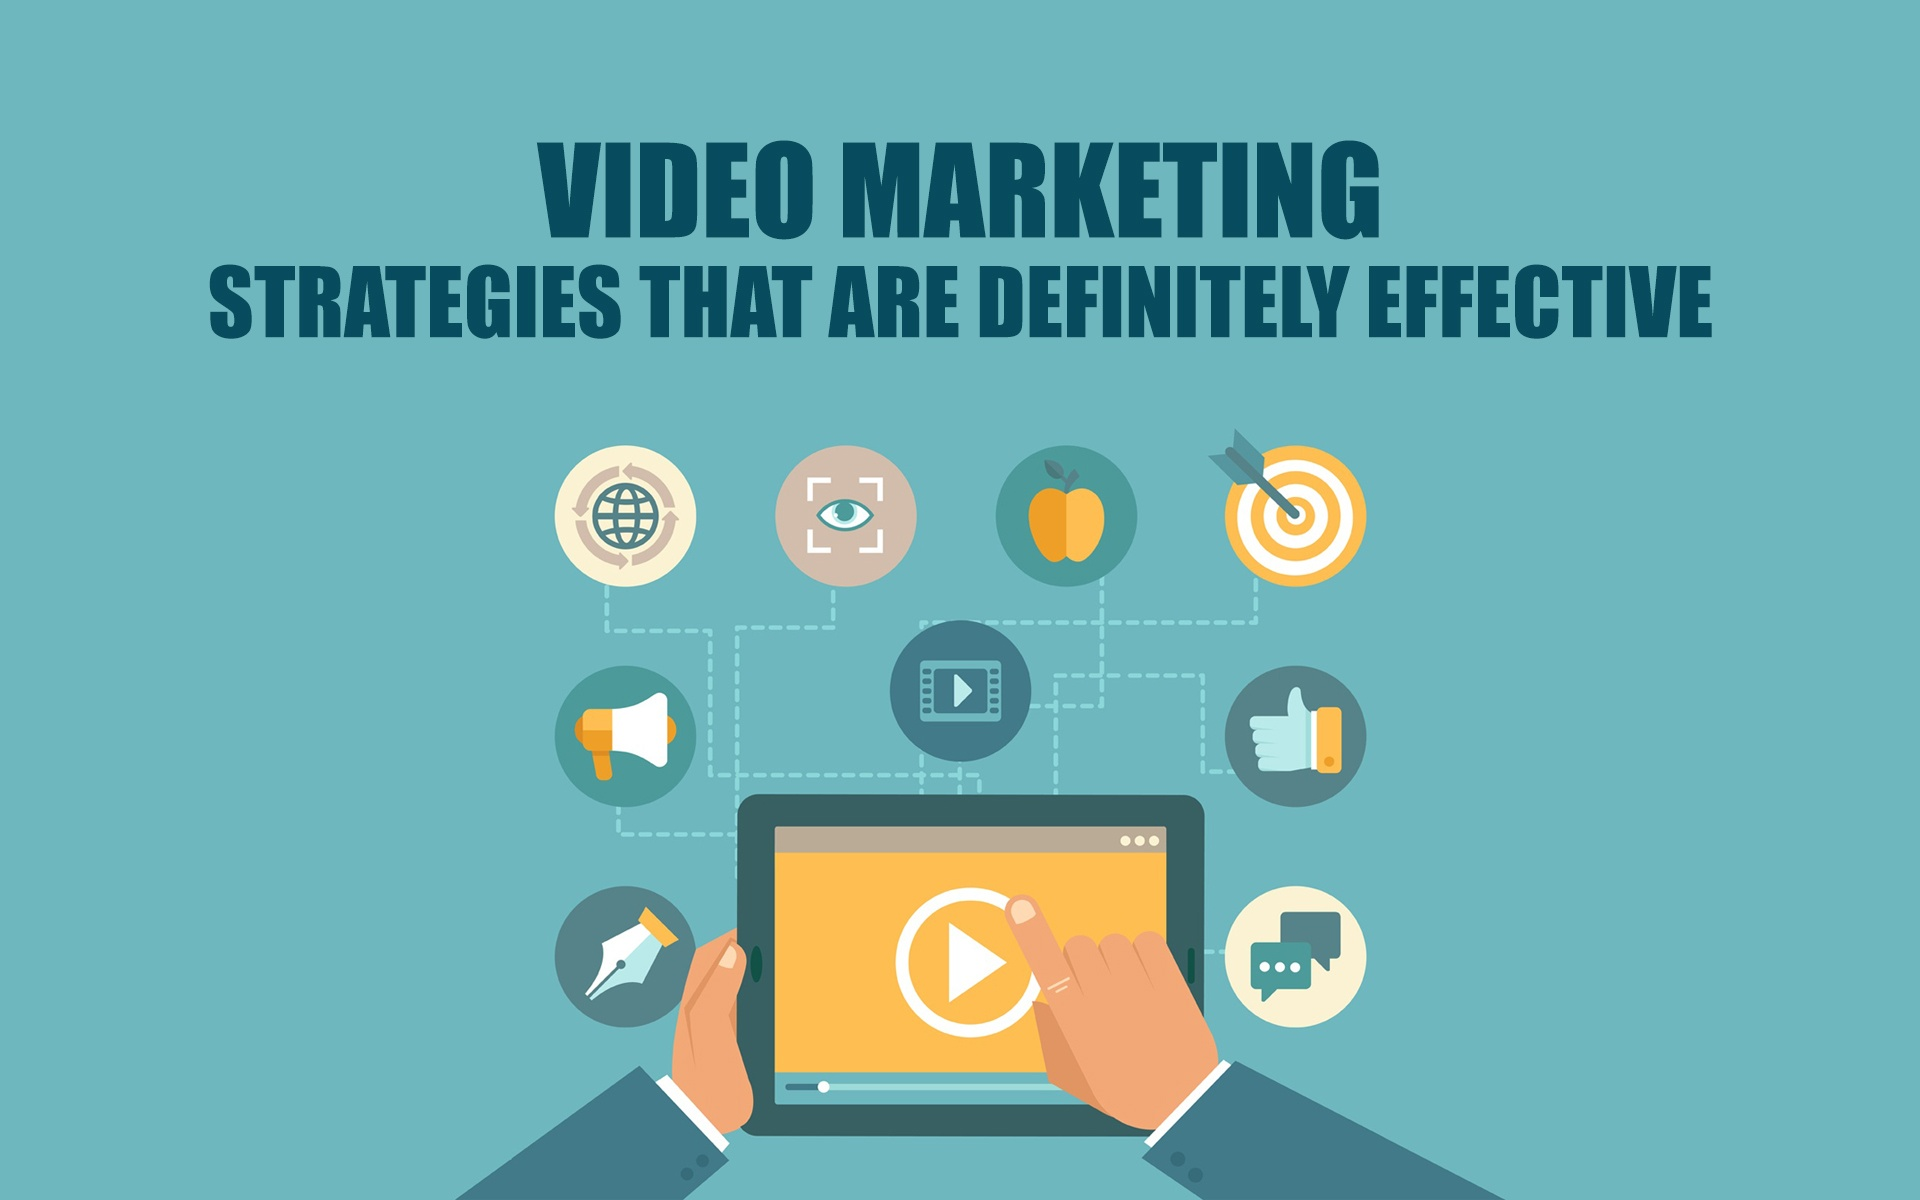 Video Marketing Strategies That Are Definitely Effective